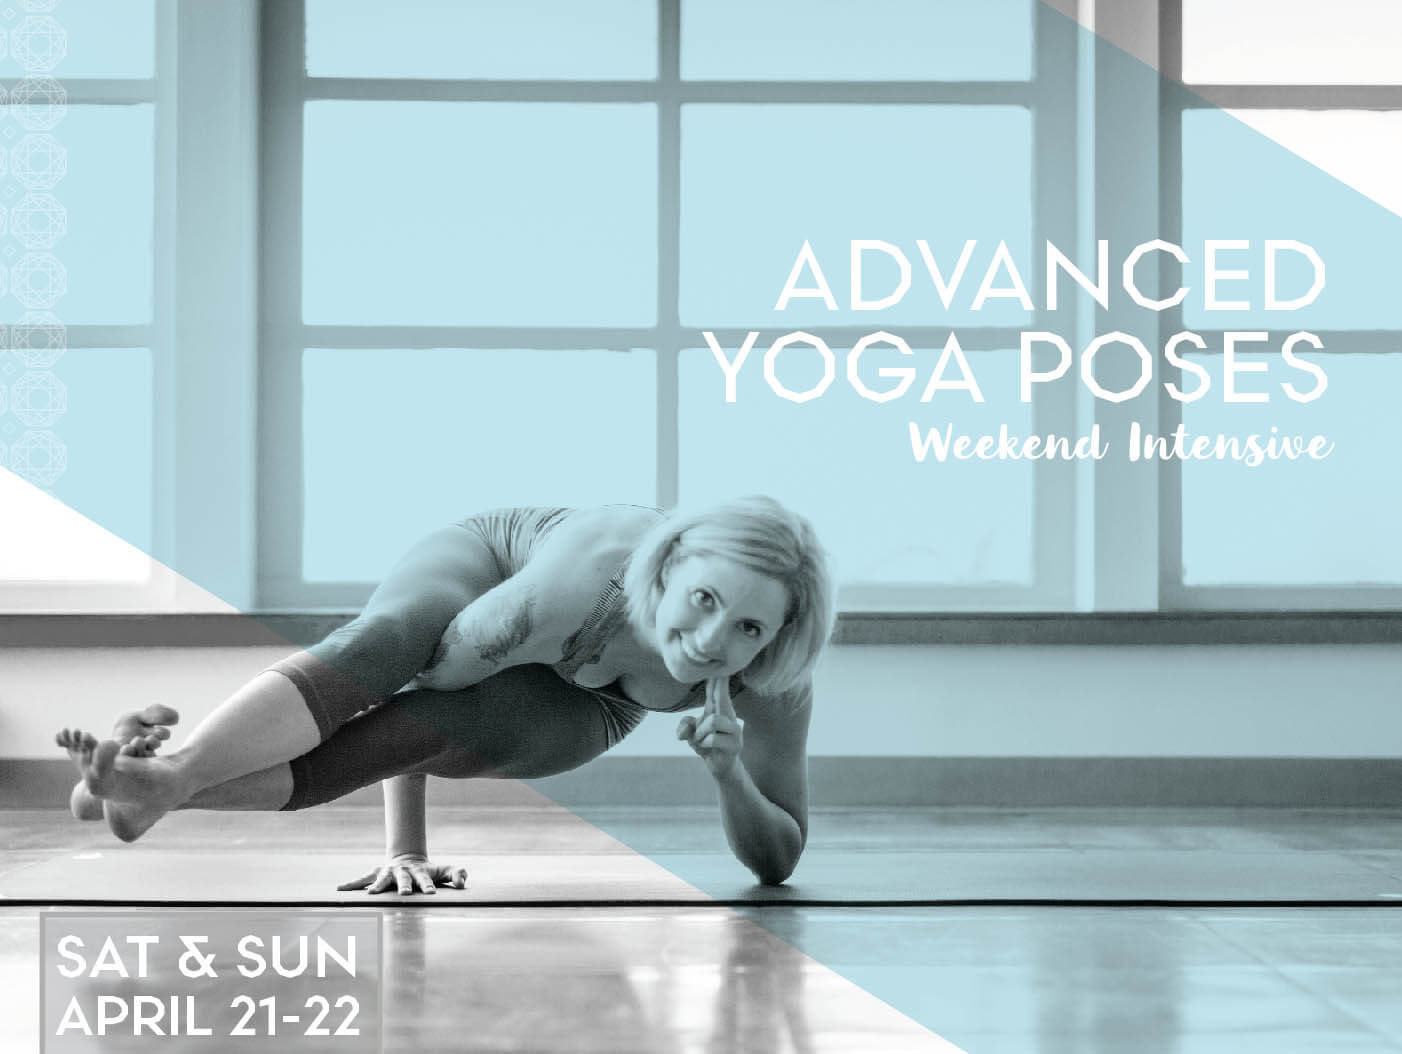 Advanced Yoga Poses Weekend Intensive Castle Hill Fitness Downtown